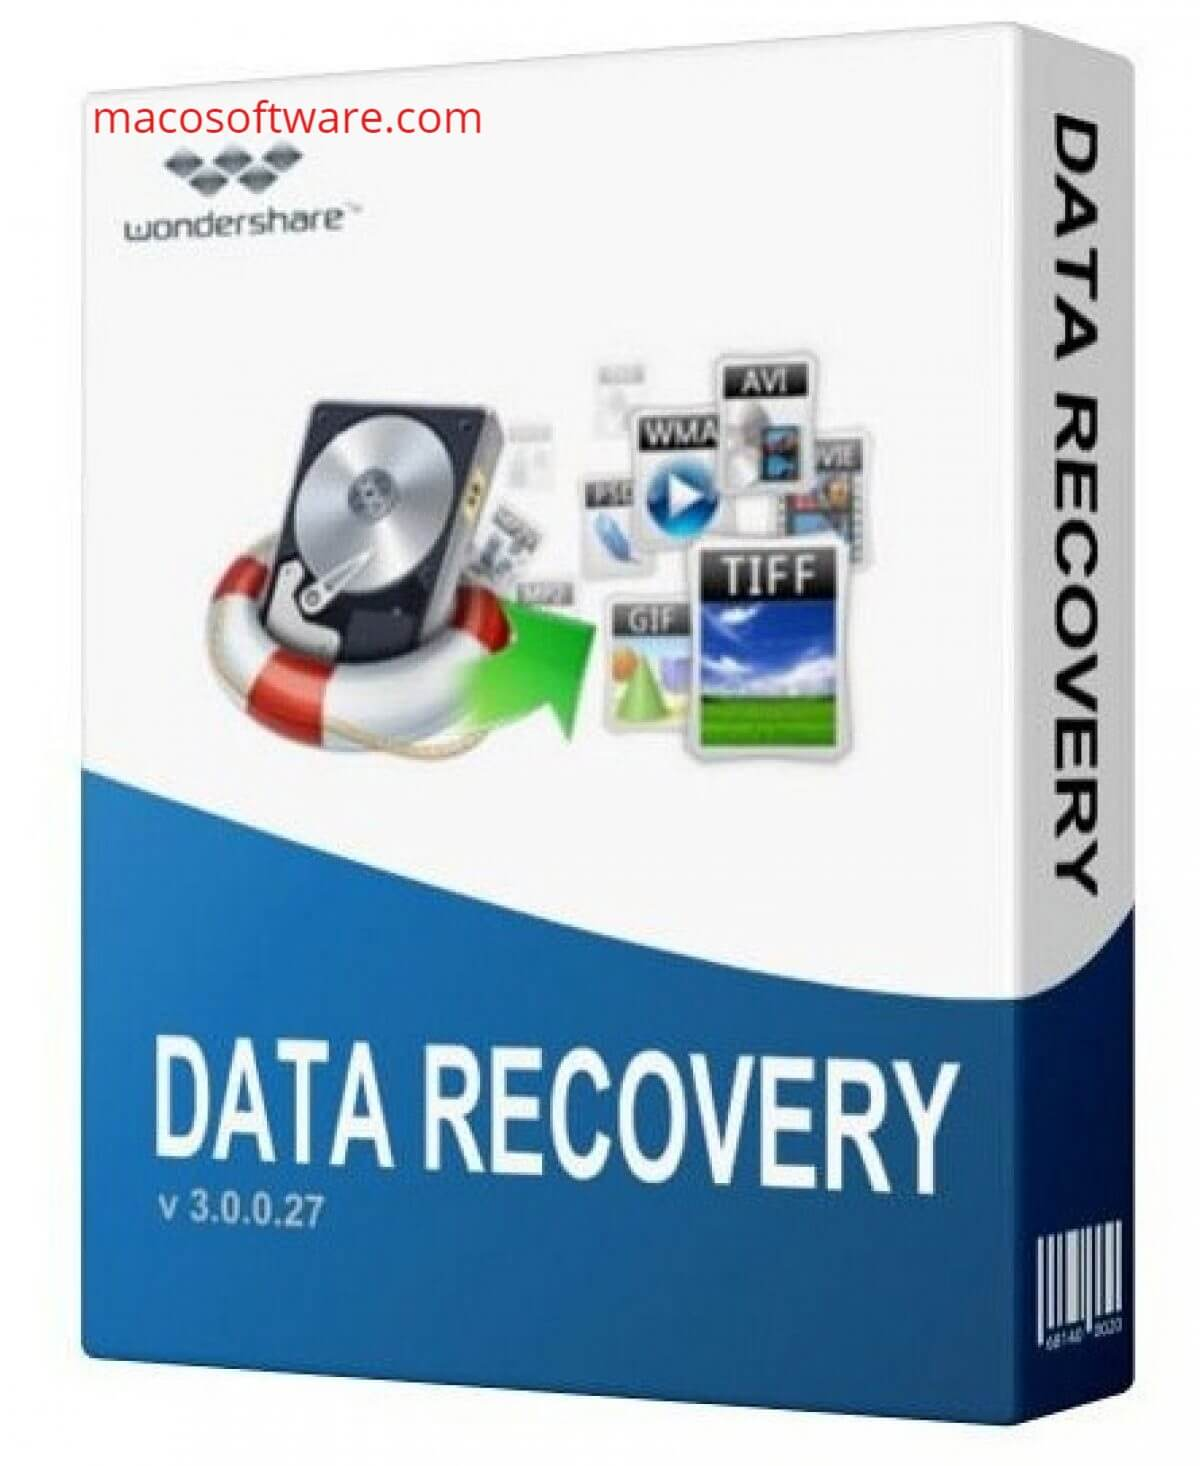 Wondershare Data Recovery Crack + License Key Free Download